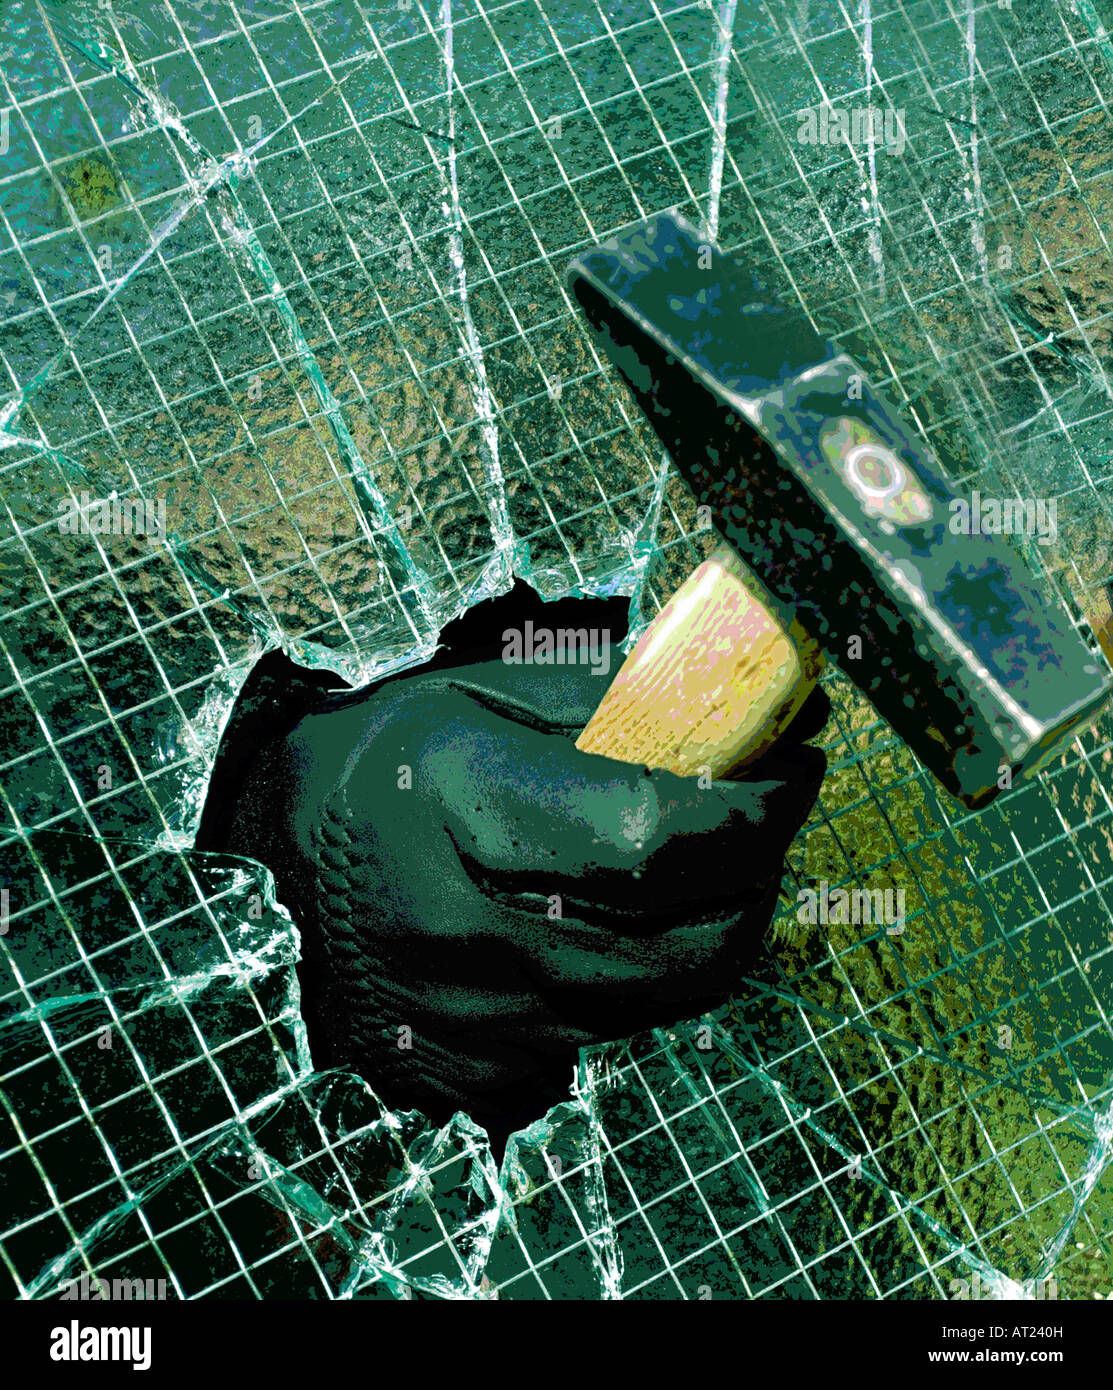 Breaking and entering into a private property by smashing through wire enforced glass pane using a hammer. - Stock Image